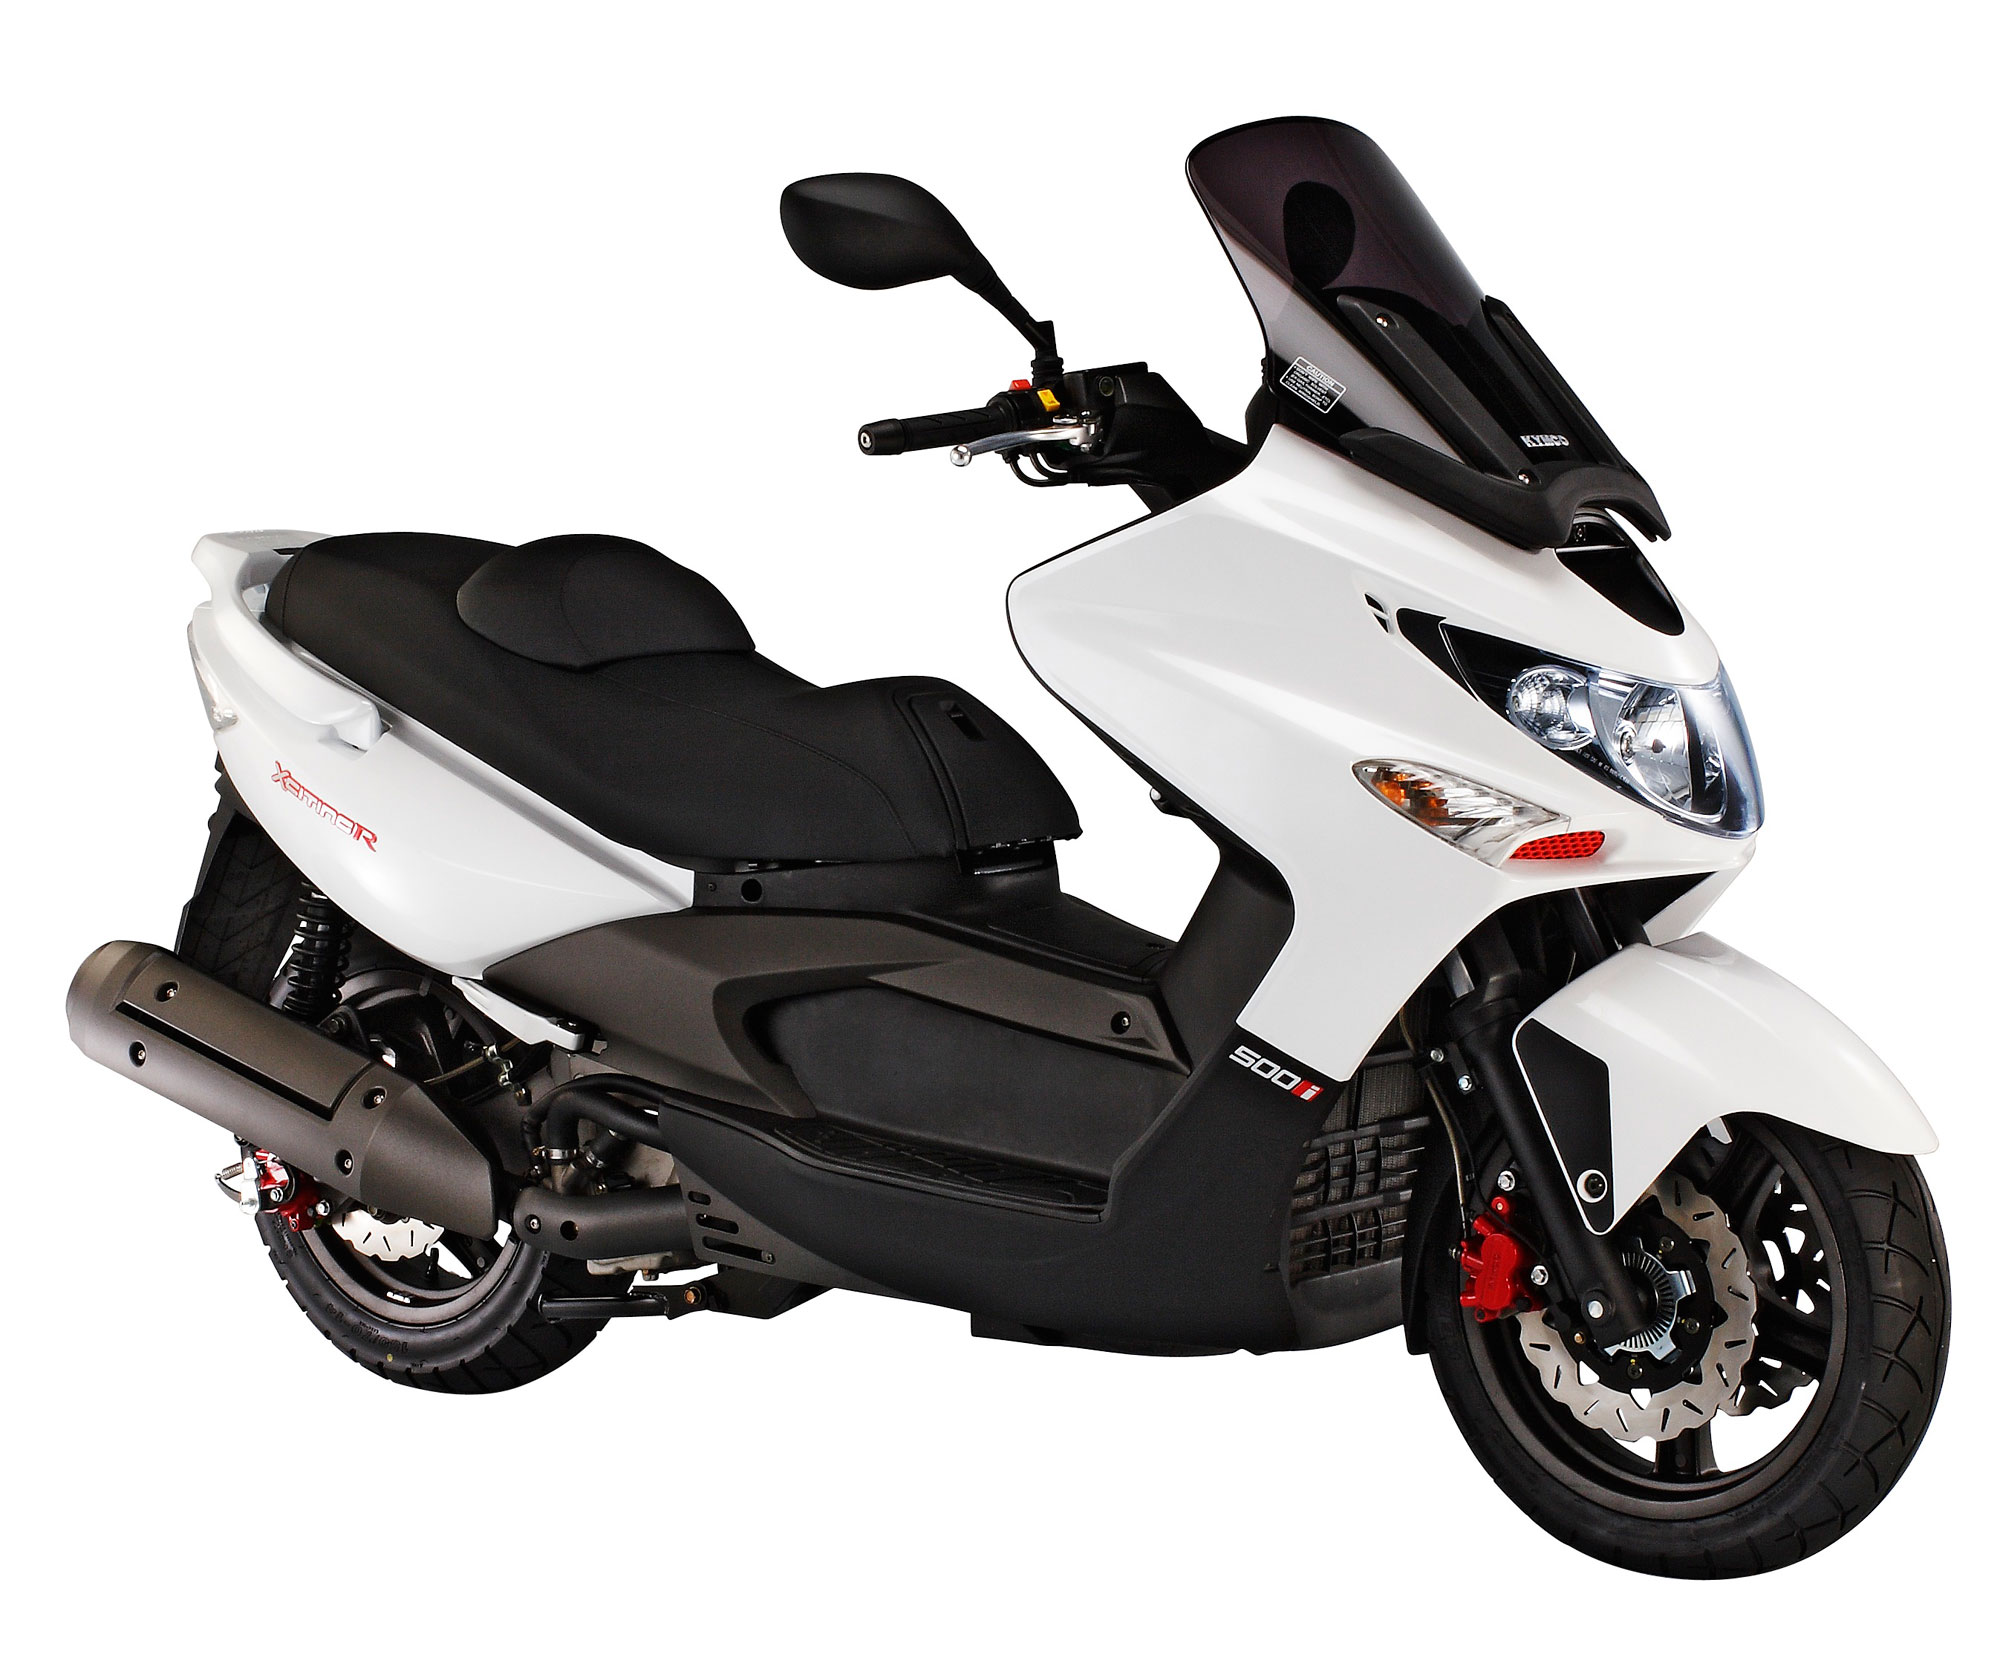 Kymco Heroism 150 1999 images #100672